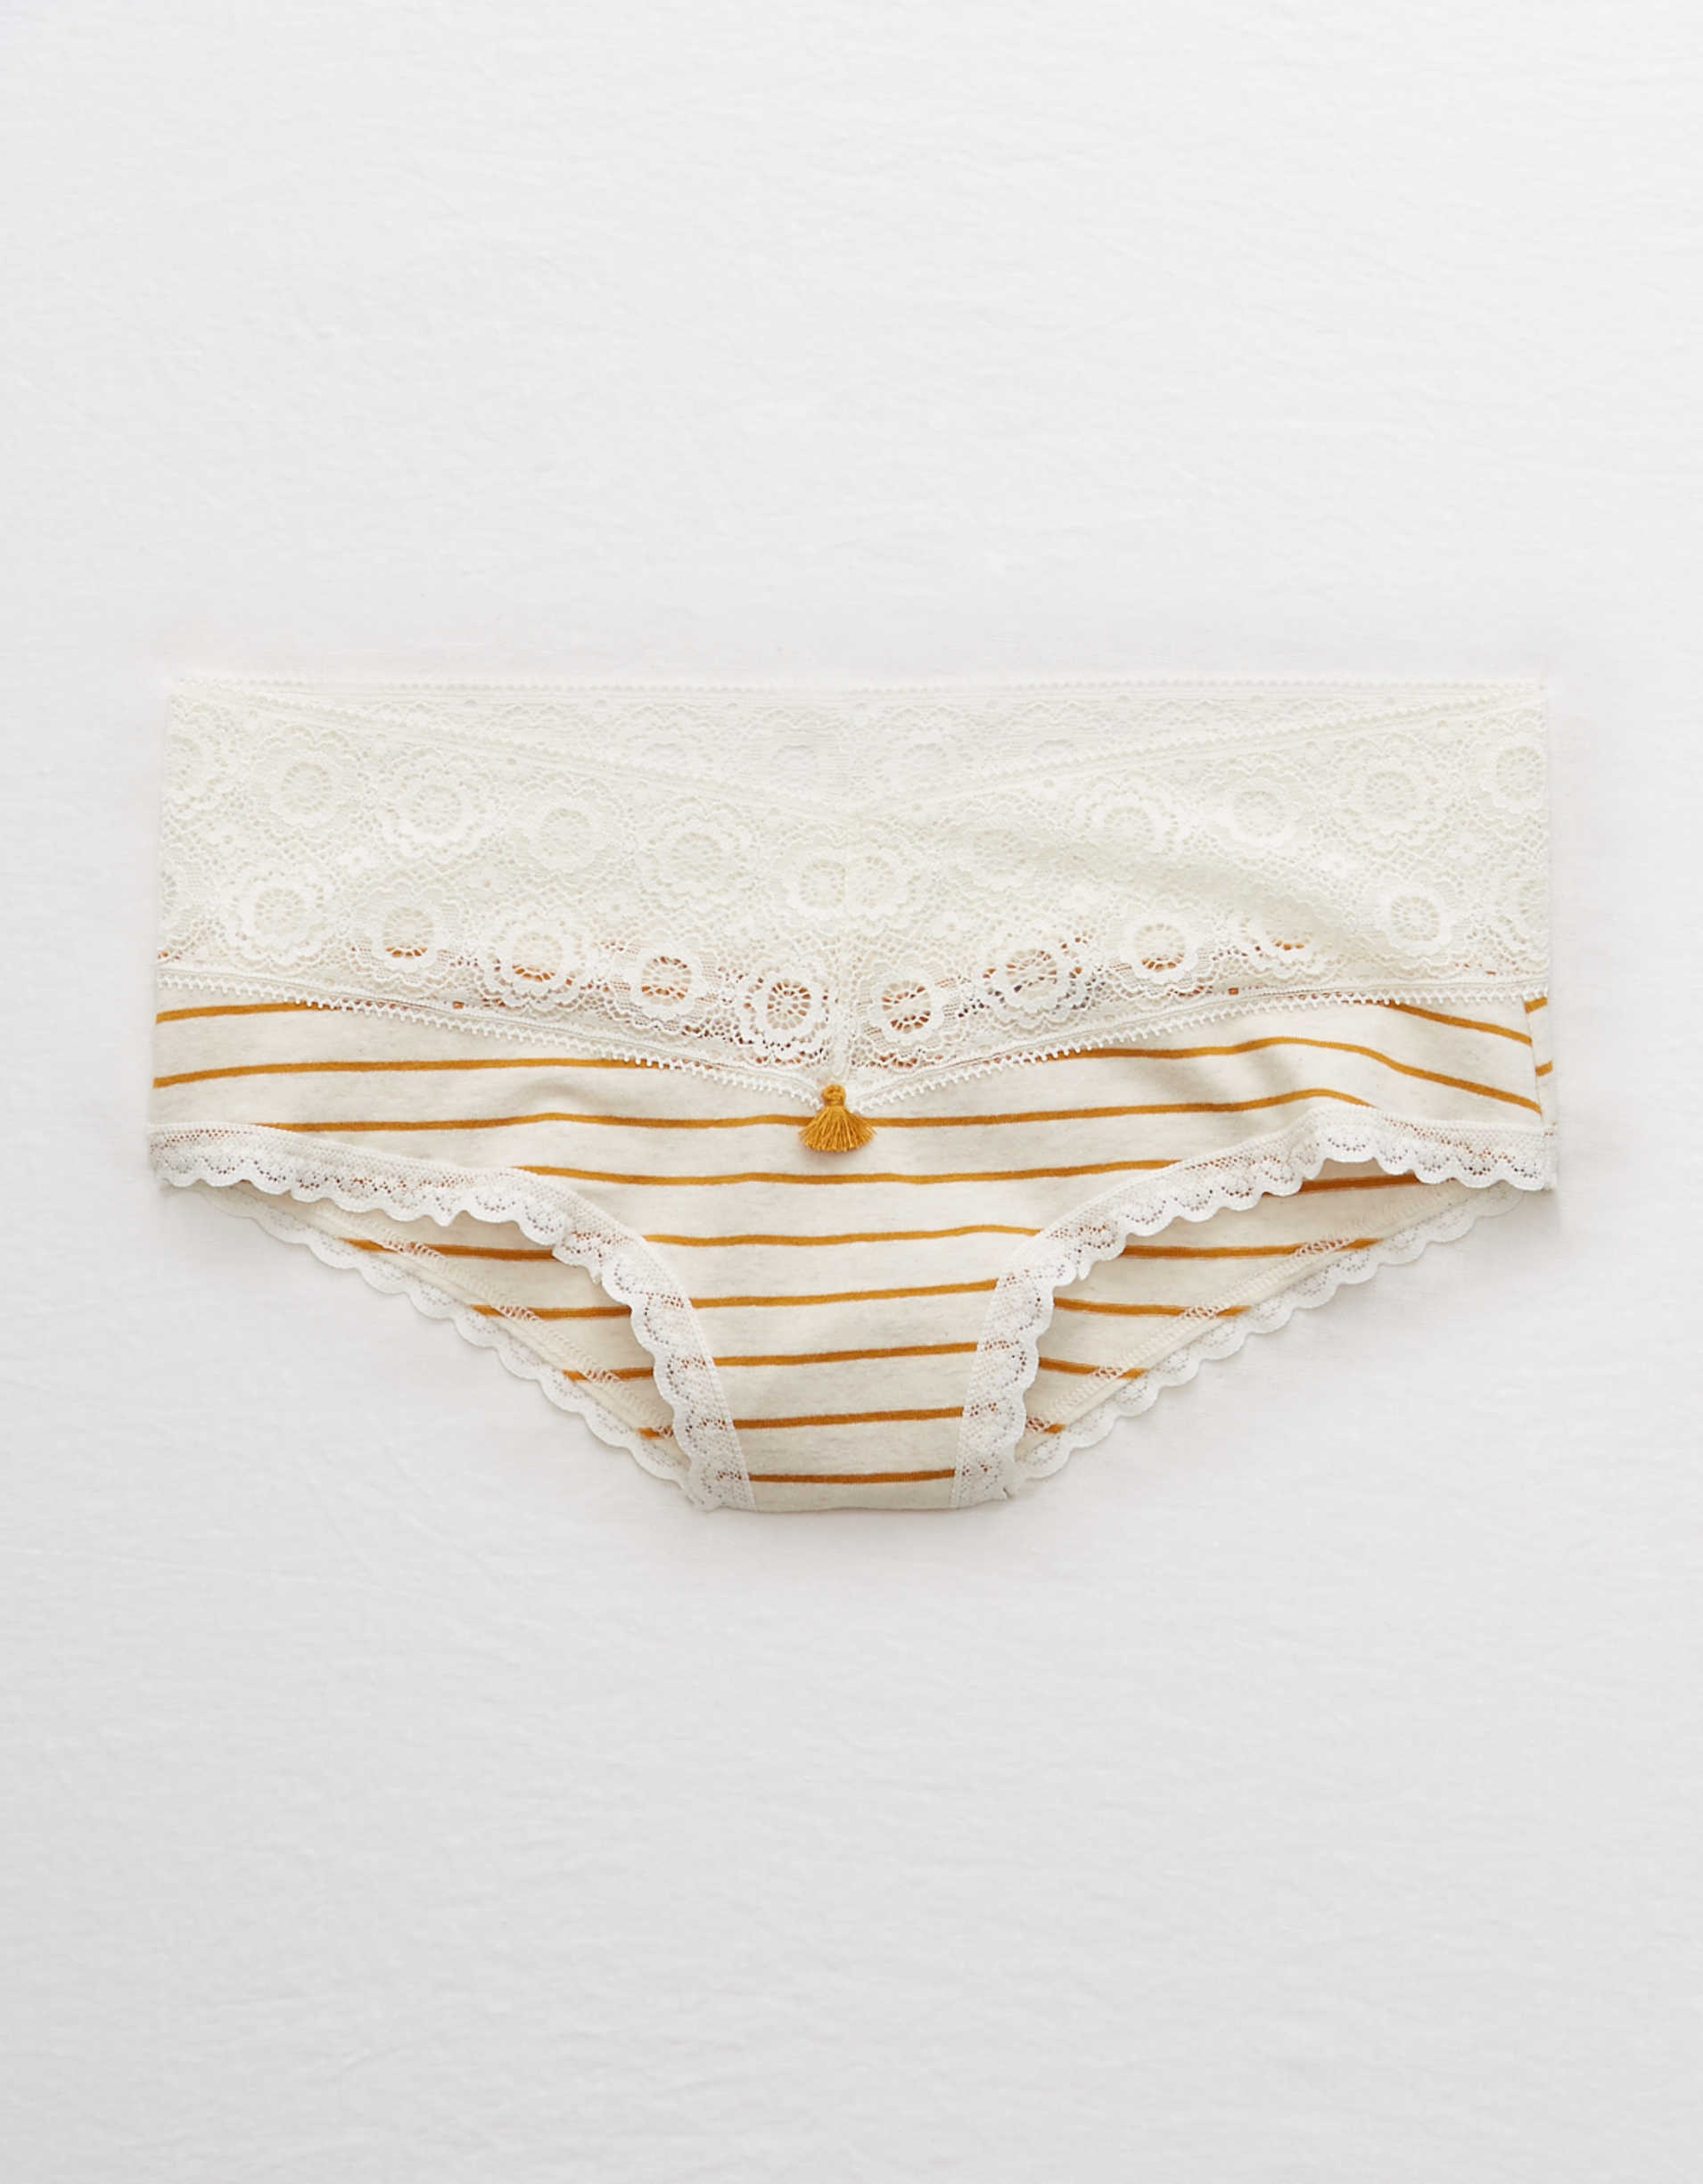 Aerie Cotton Lace Trim Cheeky Undie